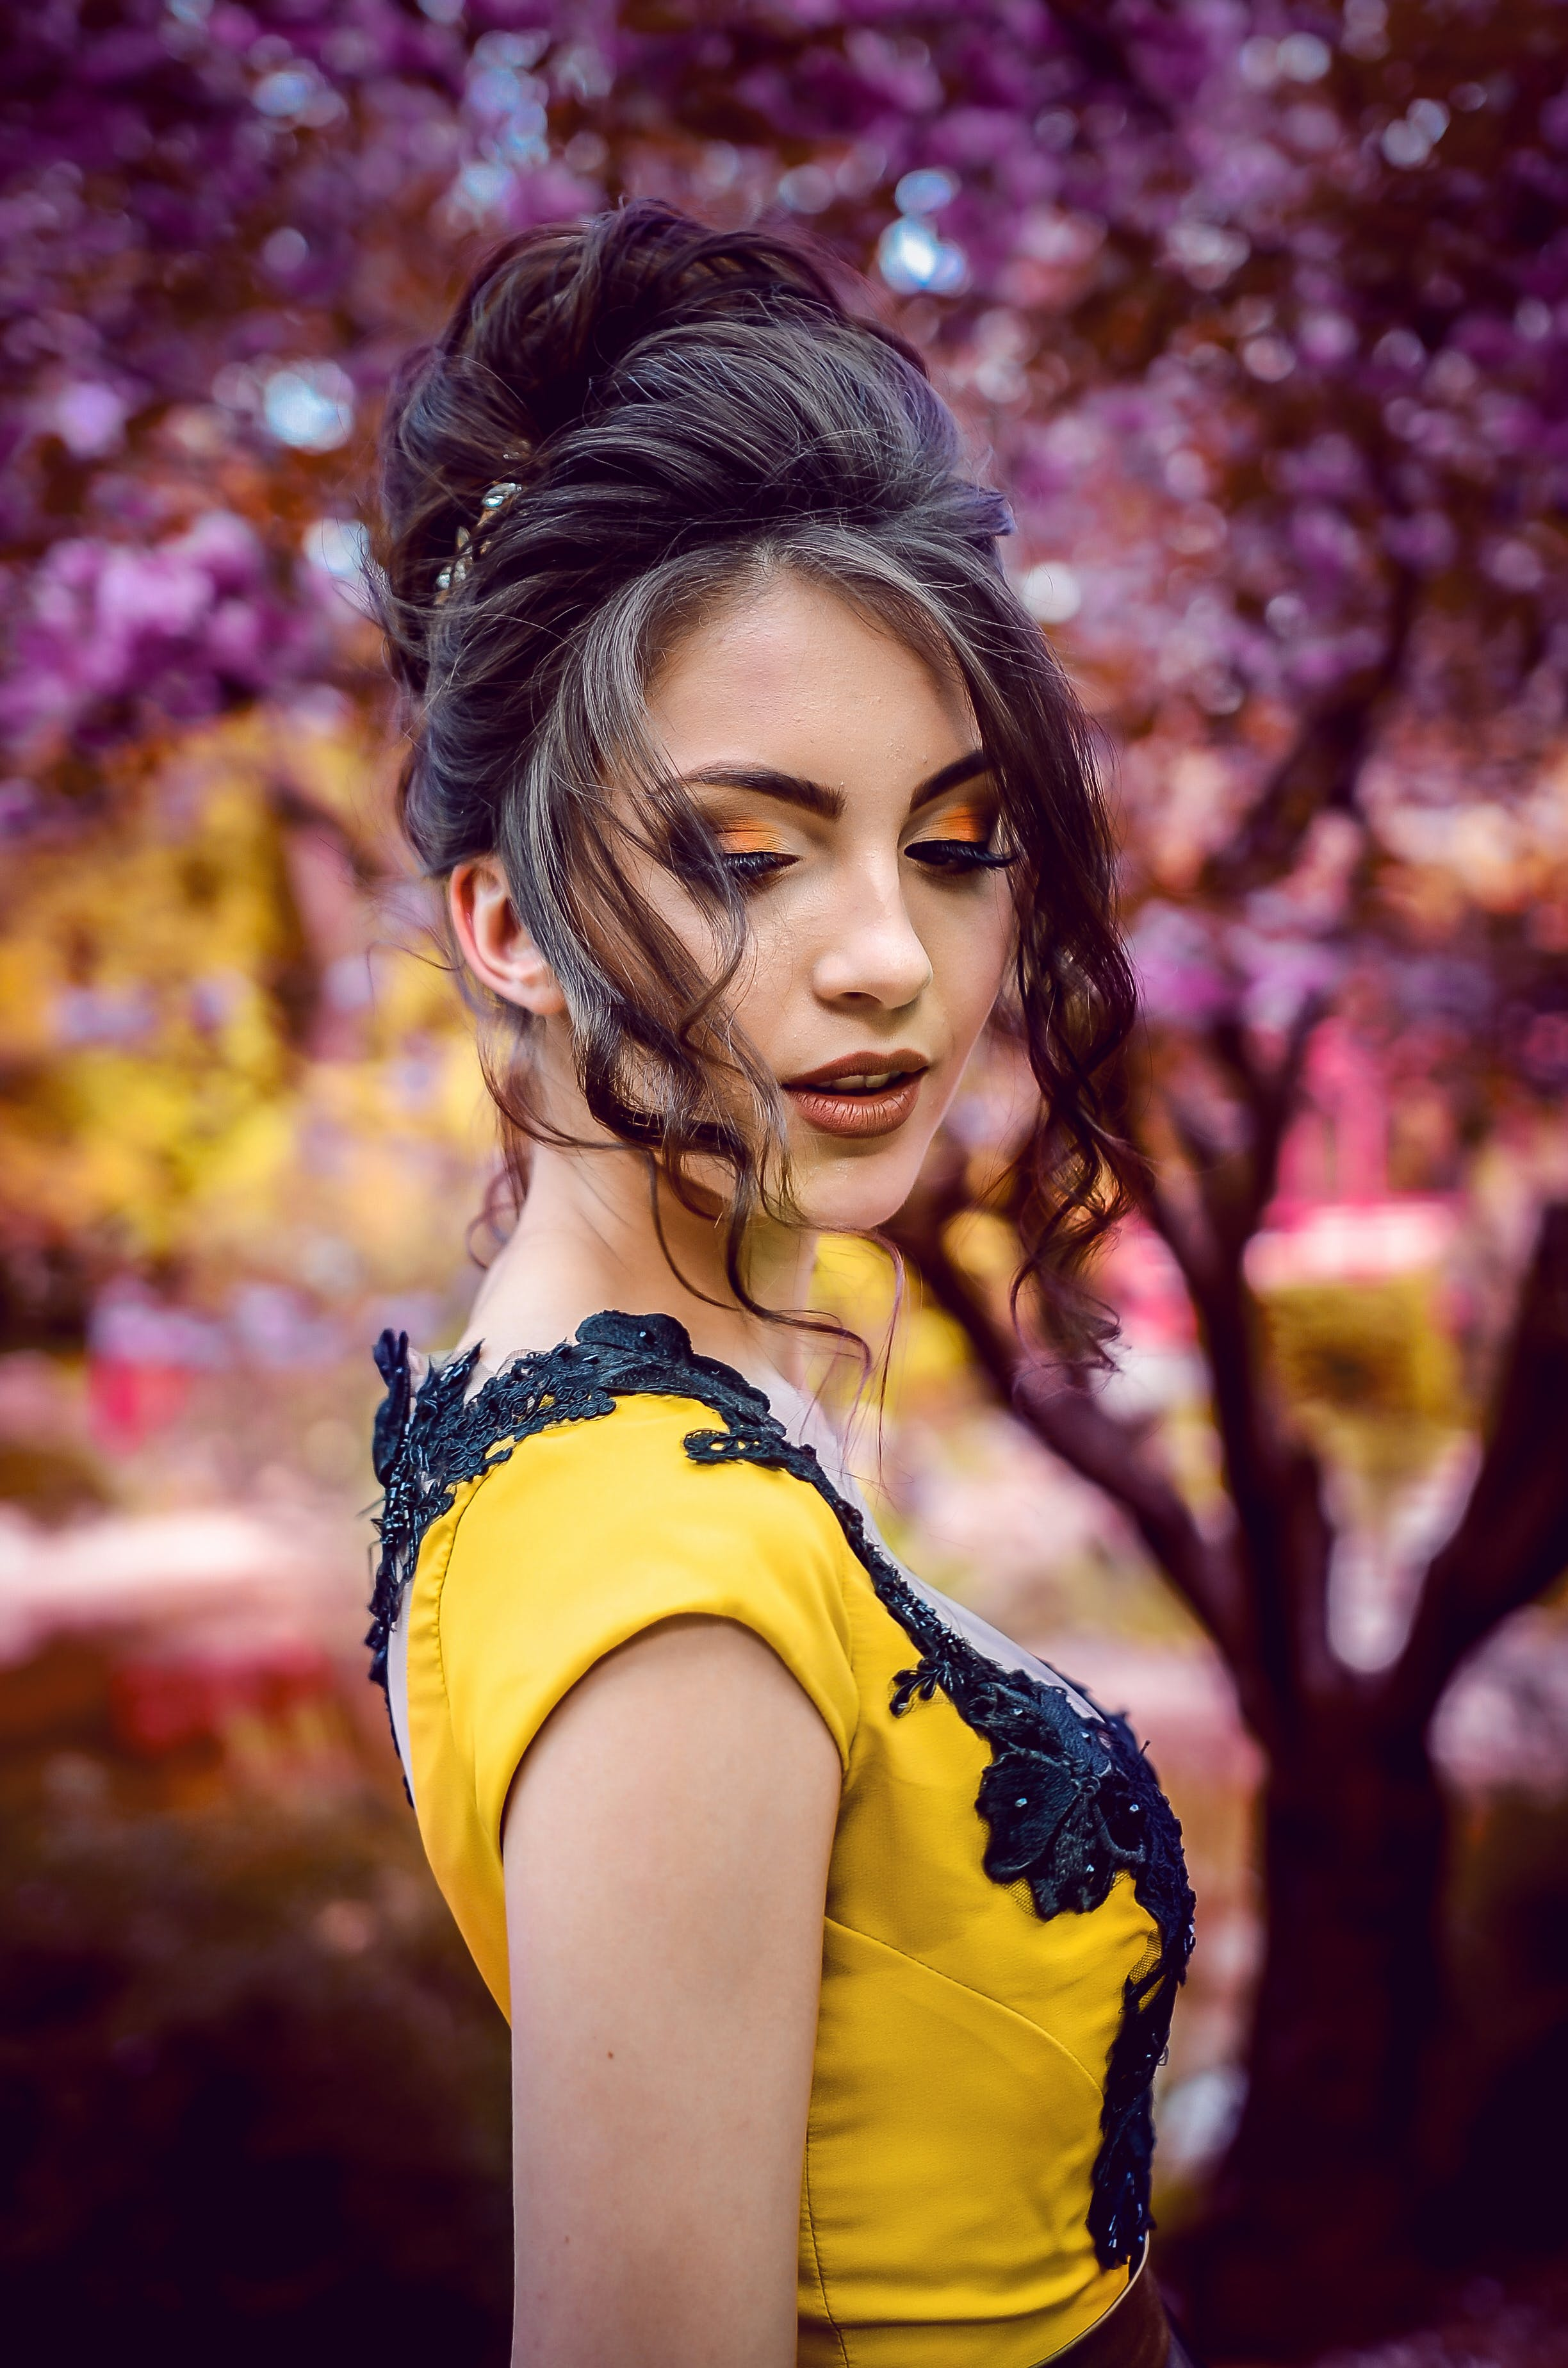 Woman In Yellow And Black Top